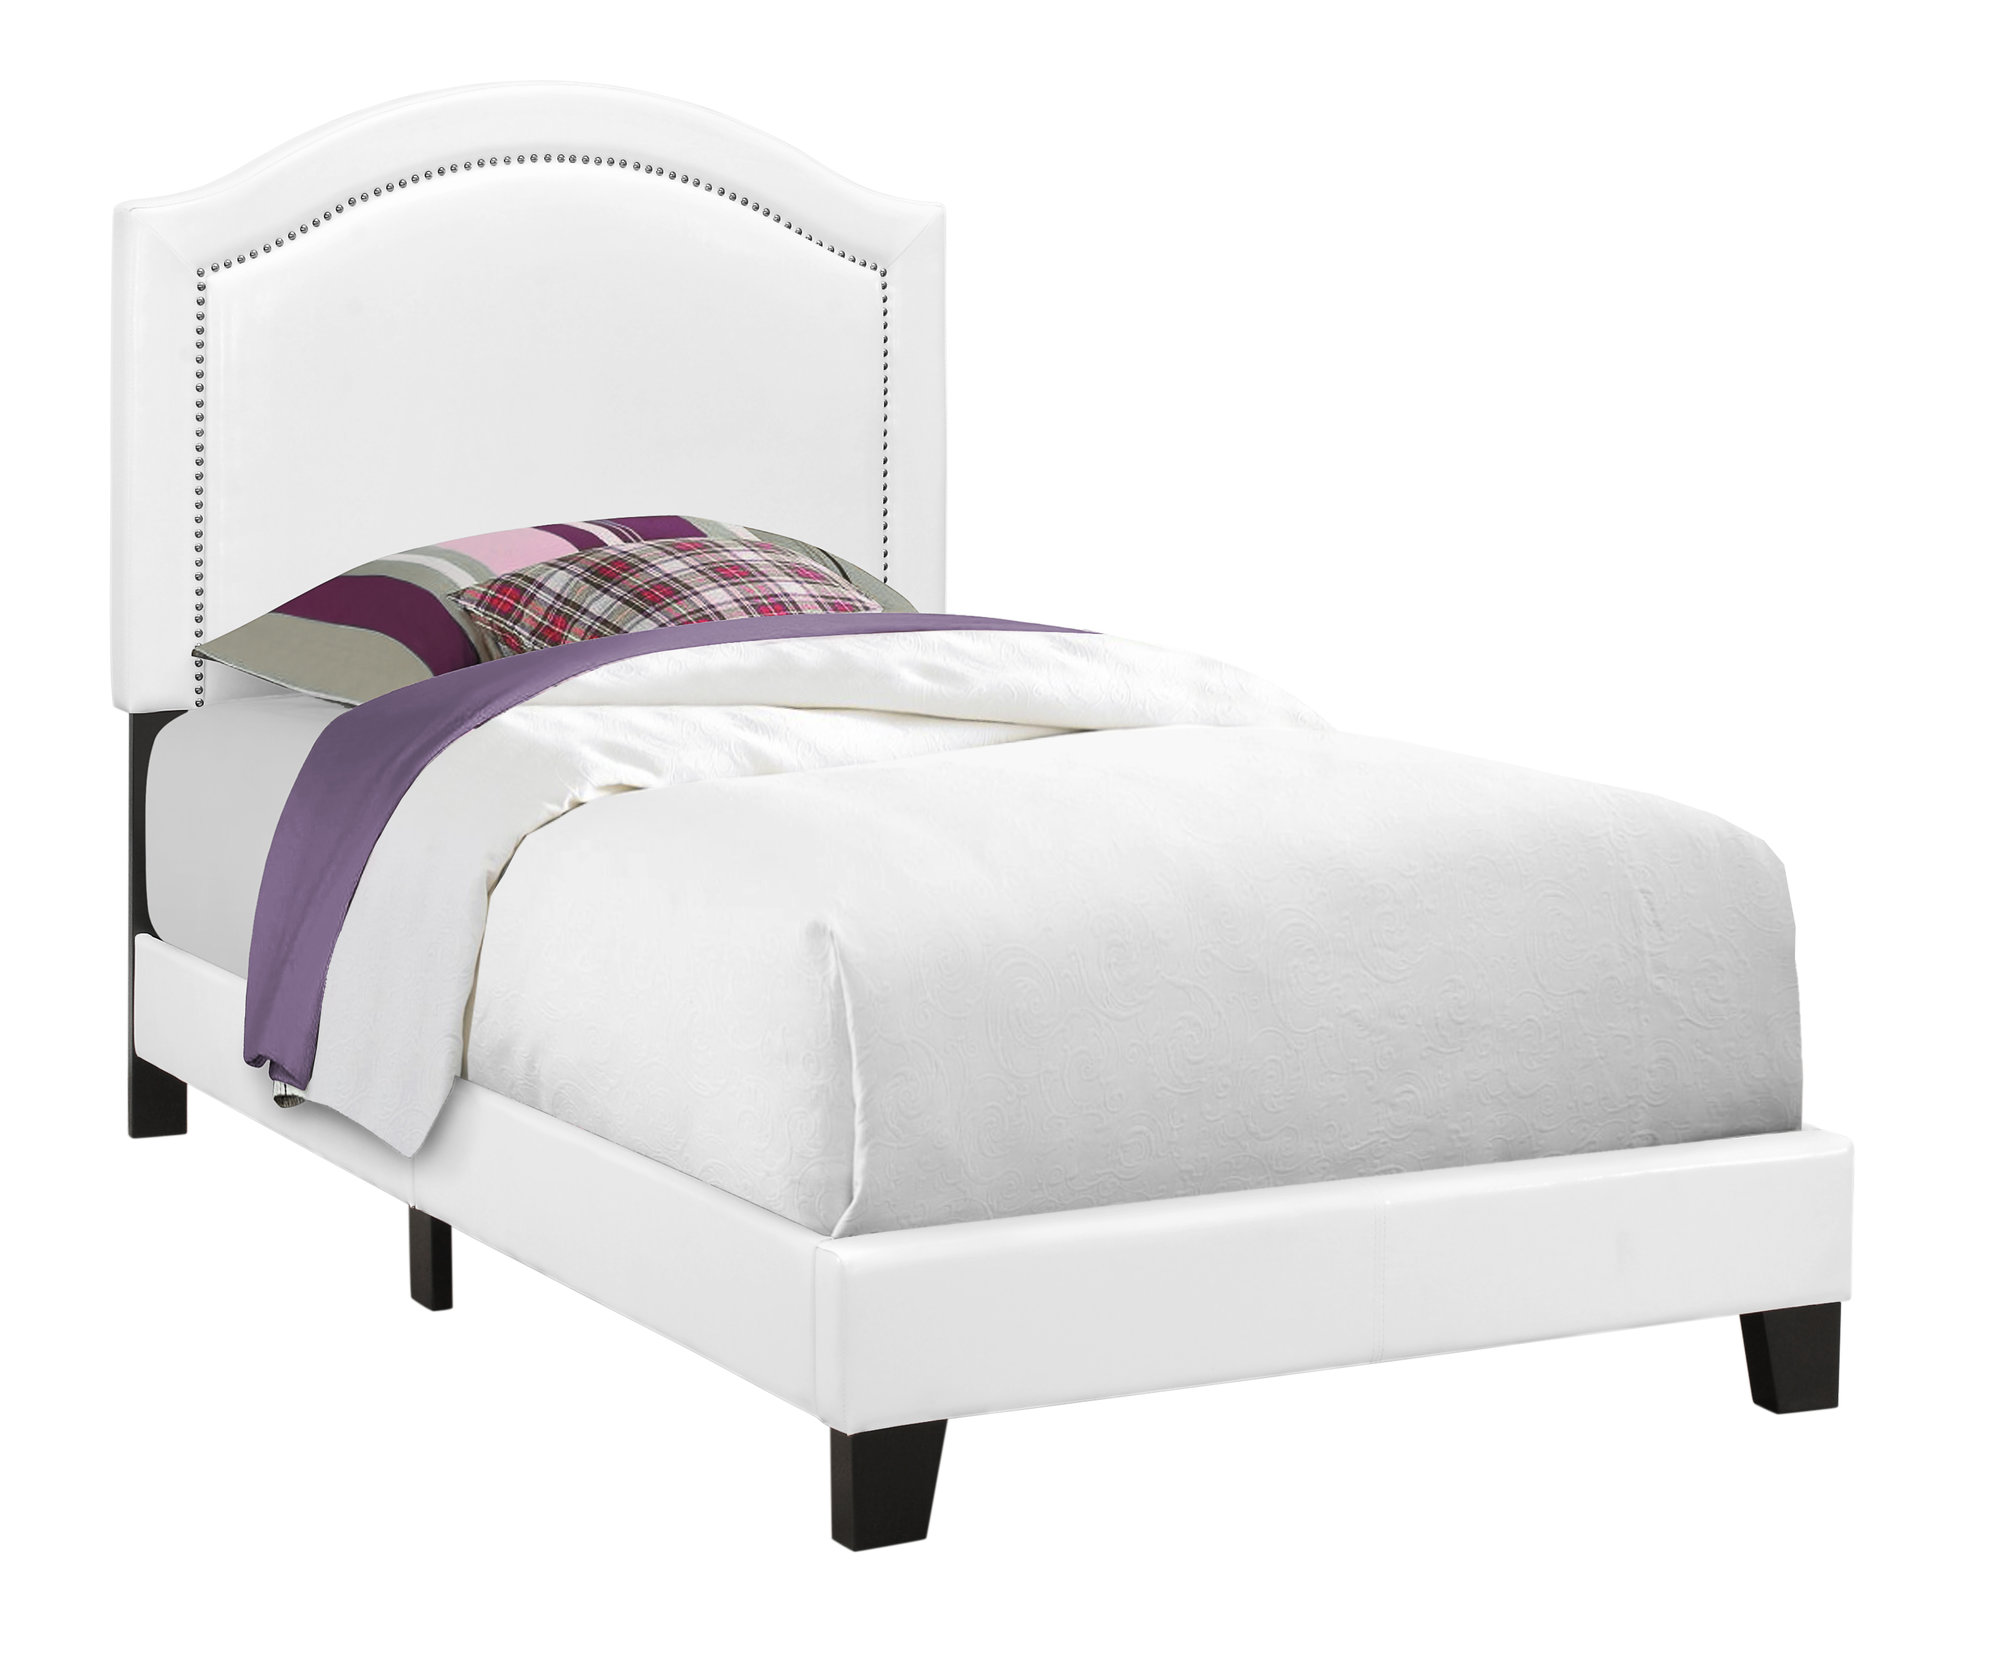 BED - TWIN SIZE / WHITE LEATHER-LOOK WITH CHROME TRIM